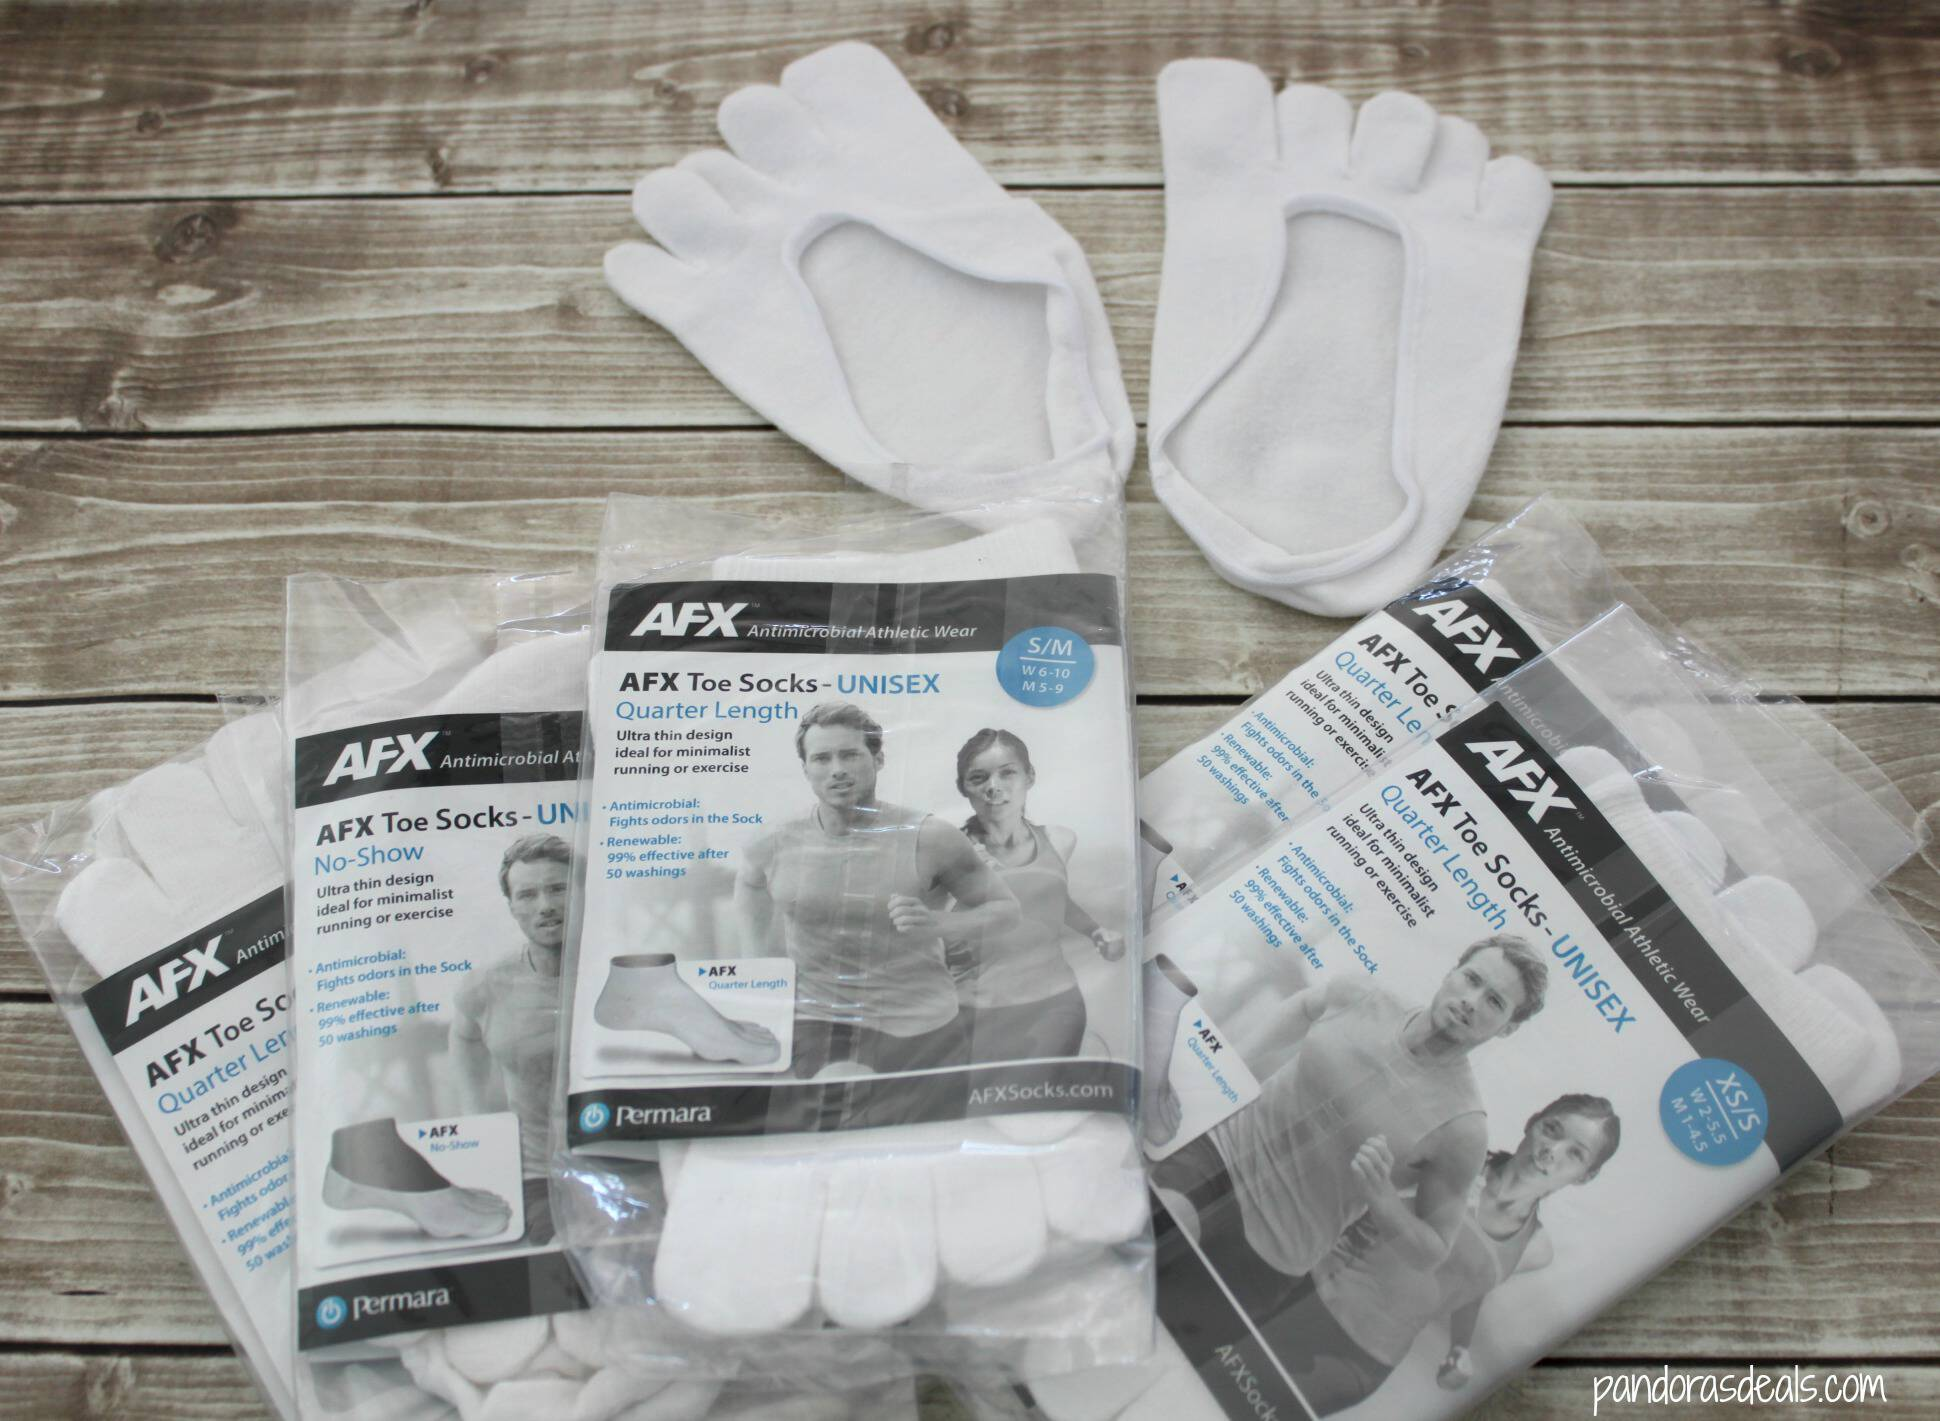 AFX Toe Socks